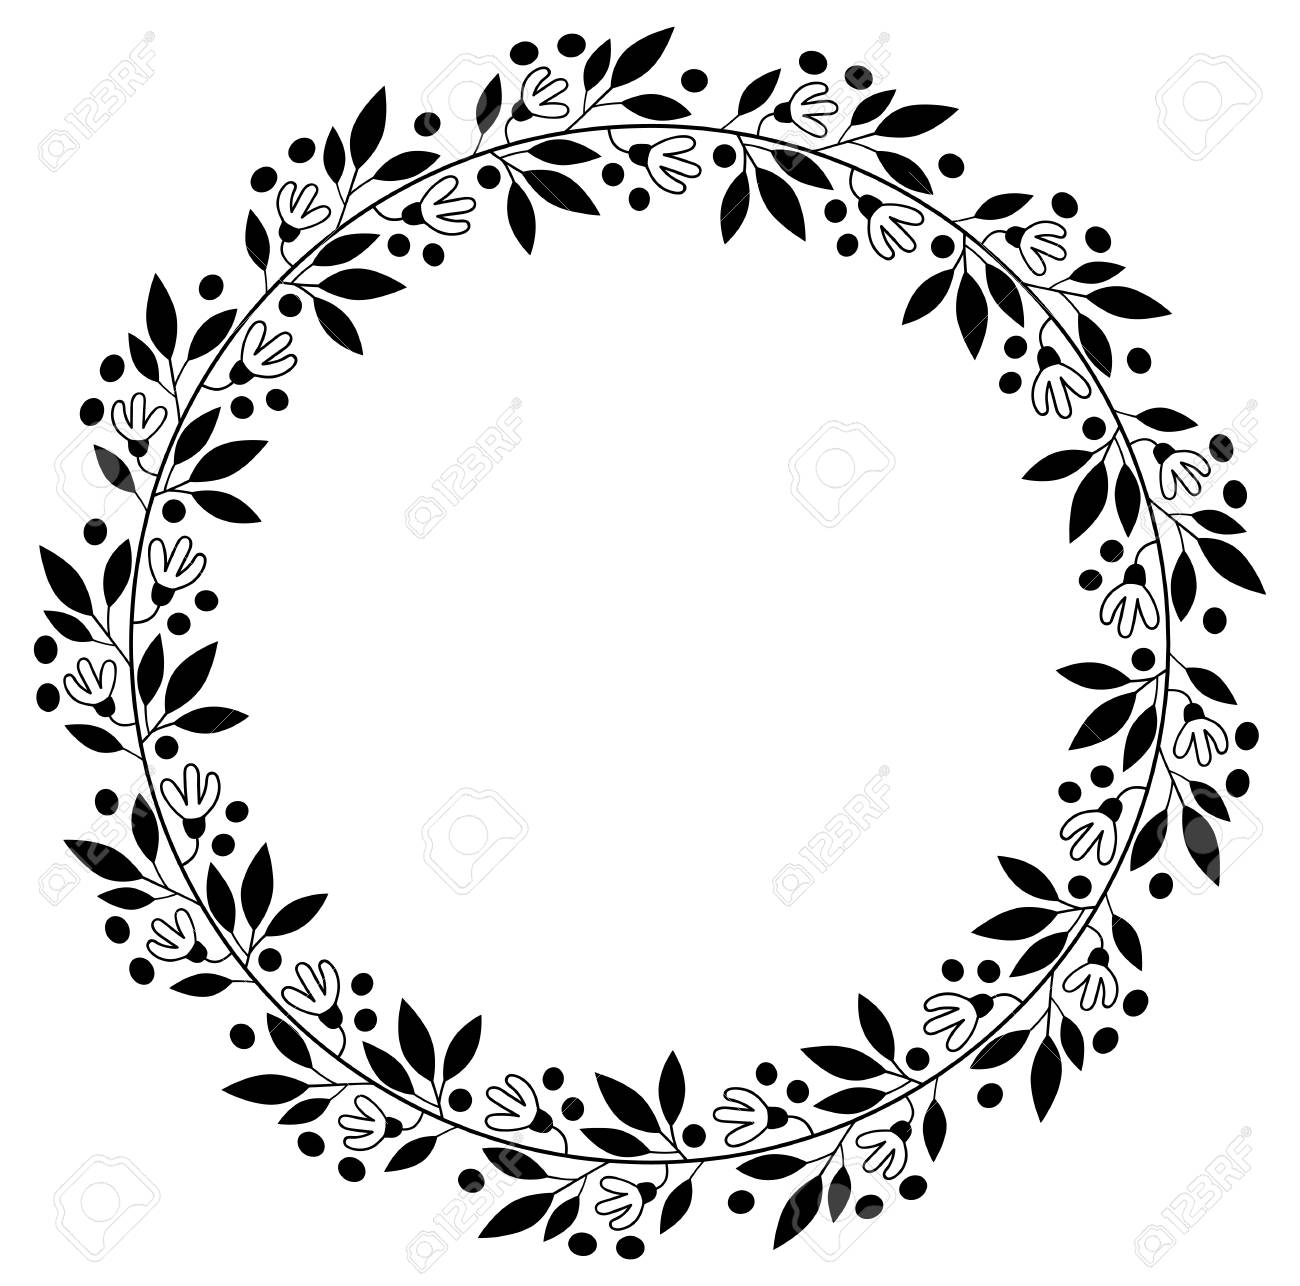 Black floral border for wedding invitations and graphic design black floral border for wedding invitations and graphic design round vector flower wreath stock vector stopboris Images